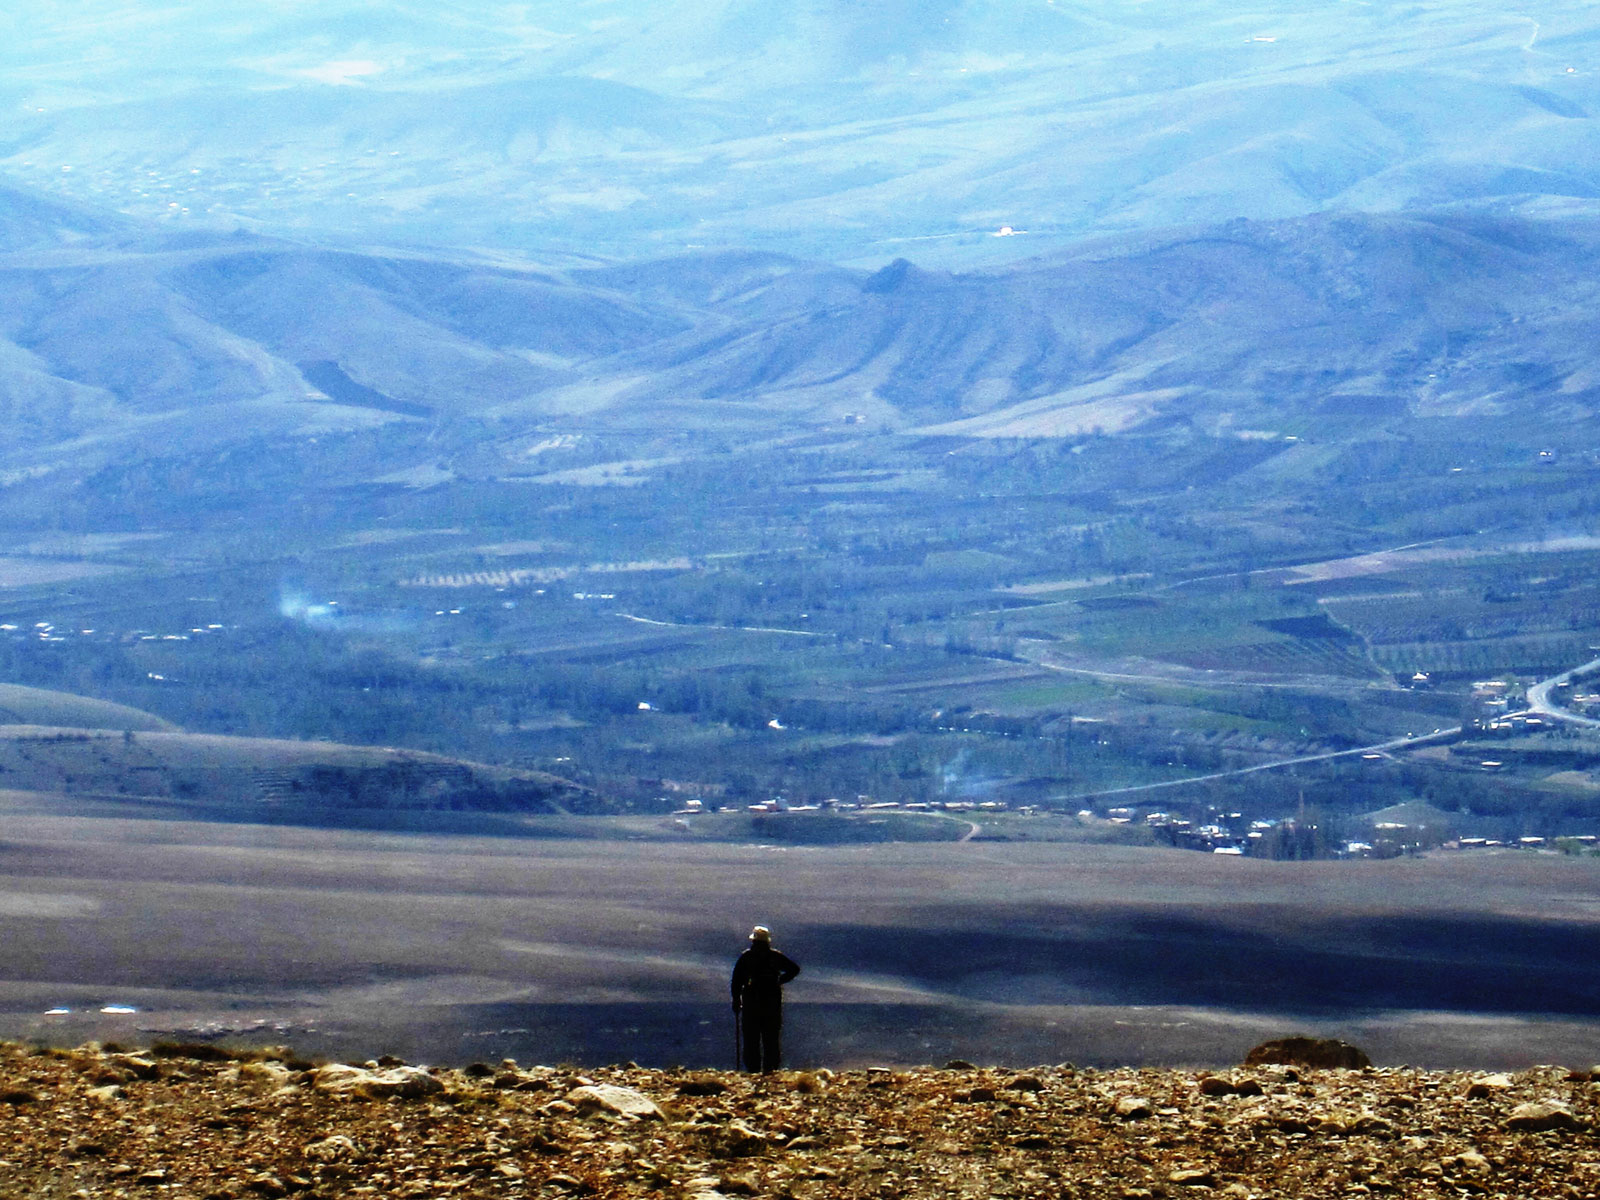 The overwhelming view from the Taurus Mountains (Turkey)